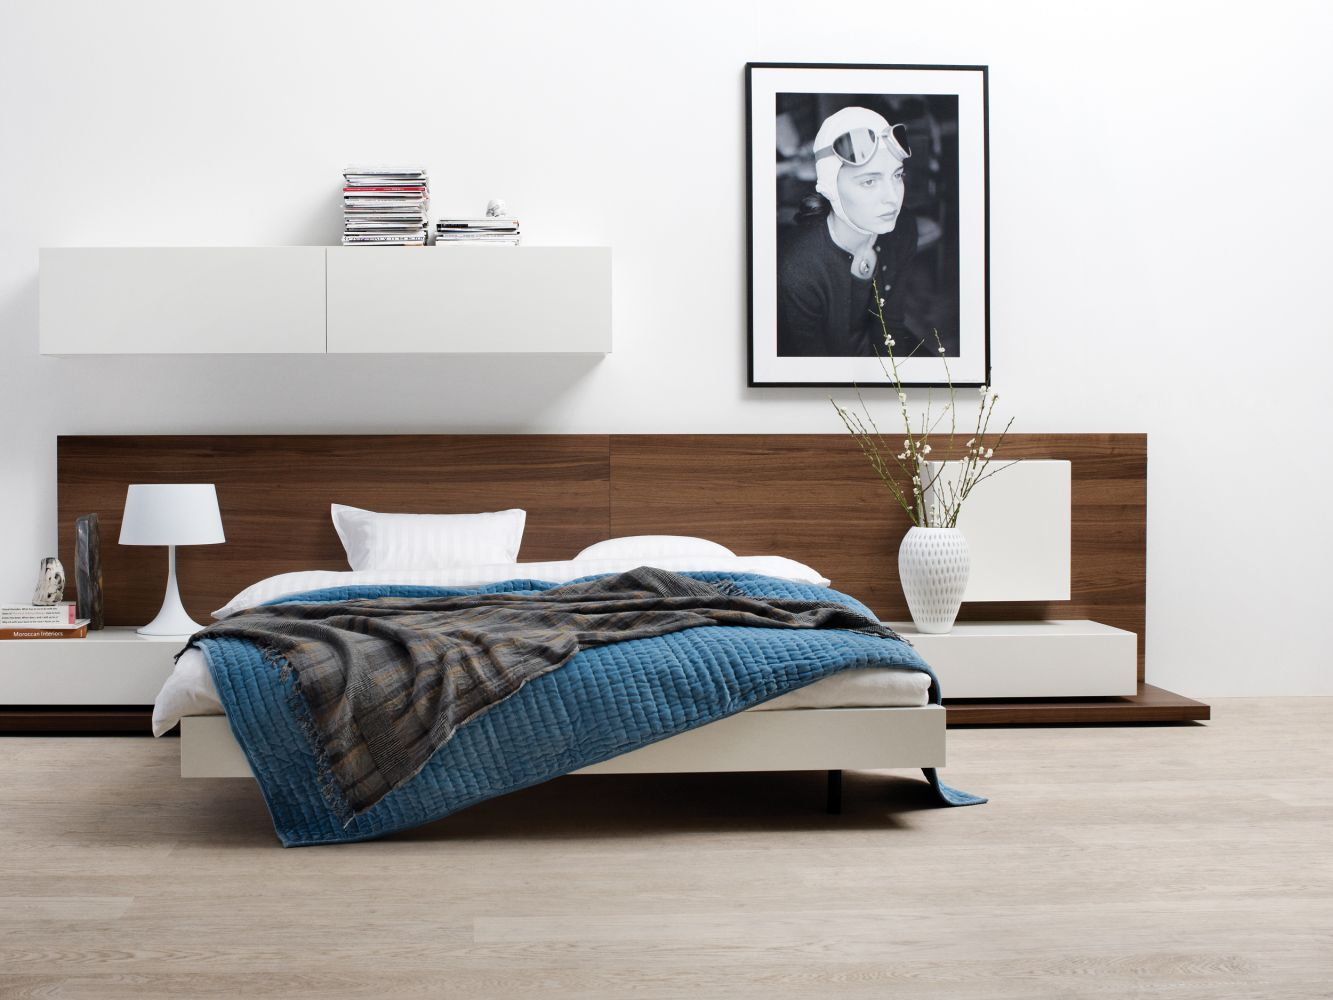 boconcept meuble et d coration marseille mobilier design contemporain meubles design marseille. Black Bedroom Furniture Sets. Home Design Ideas